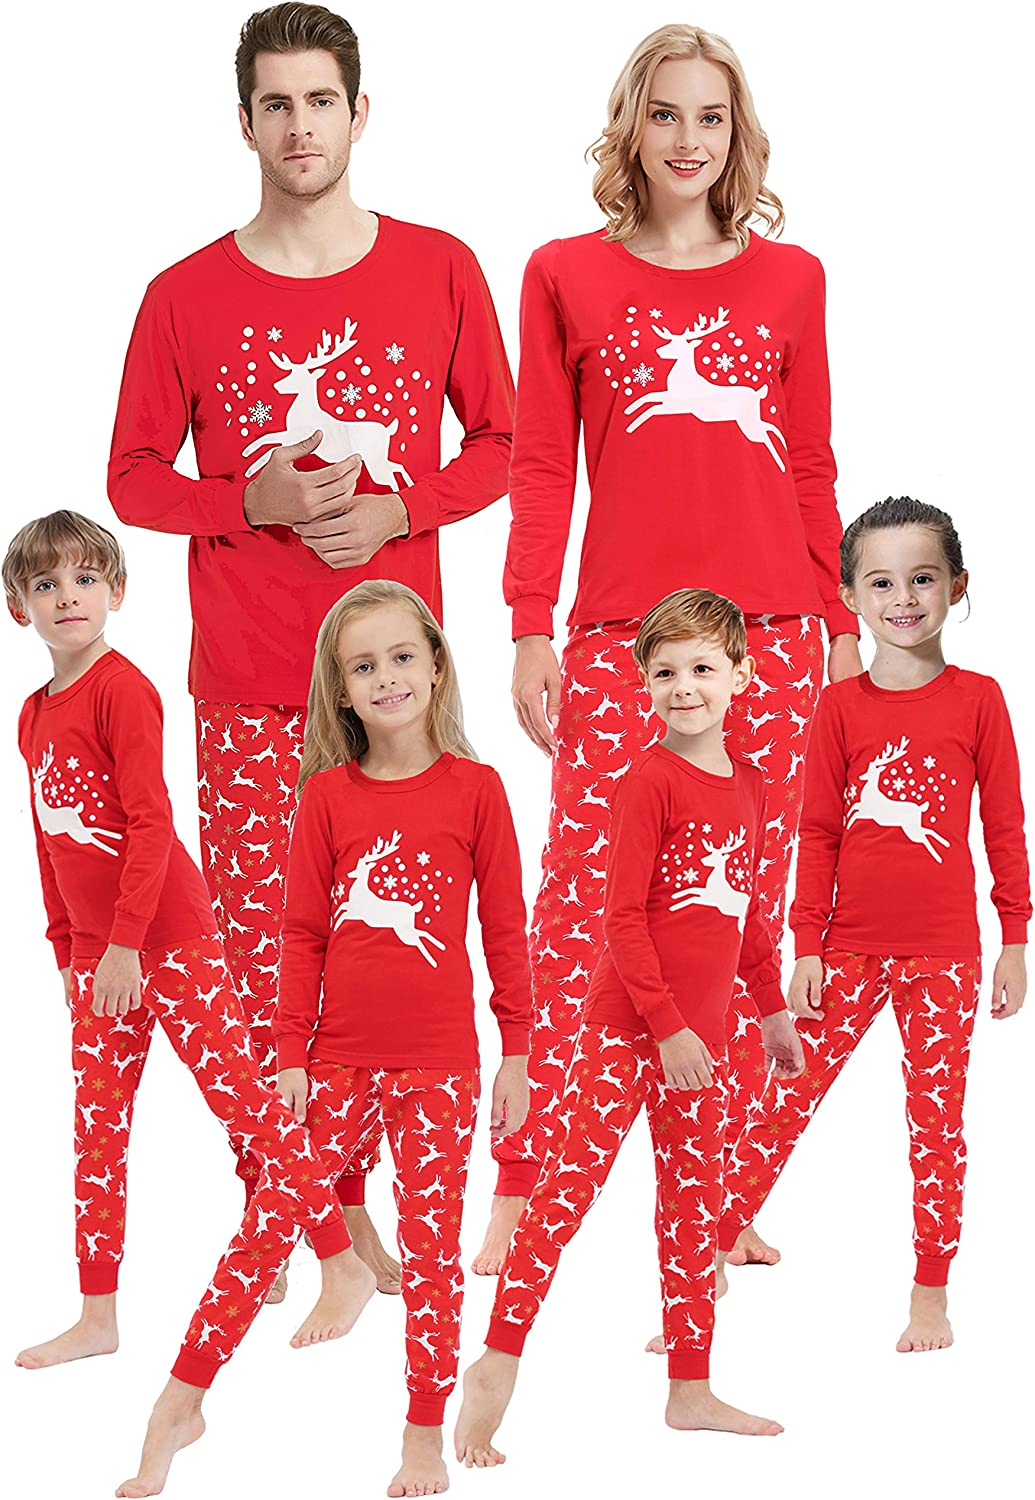 Matching Family Christmas Deer Pajamas Boys Girls Elk Pjs Women Men Clothes Children Sleepwear